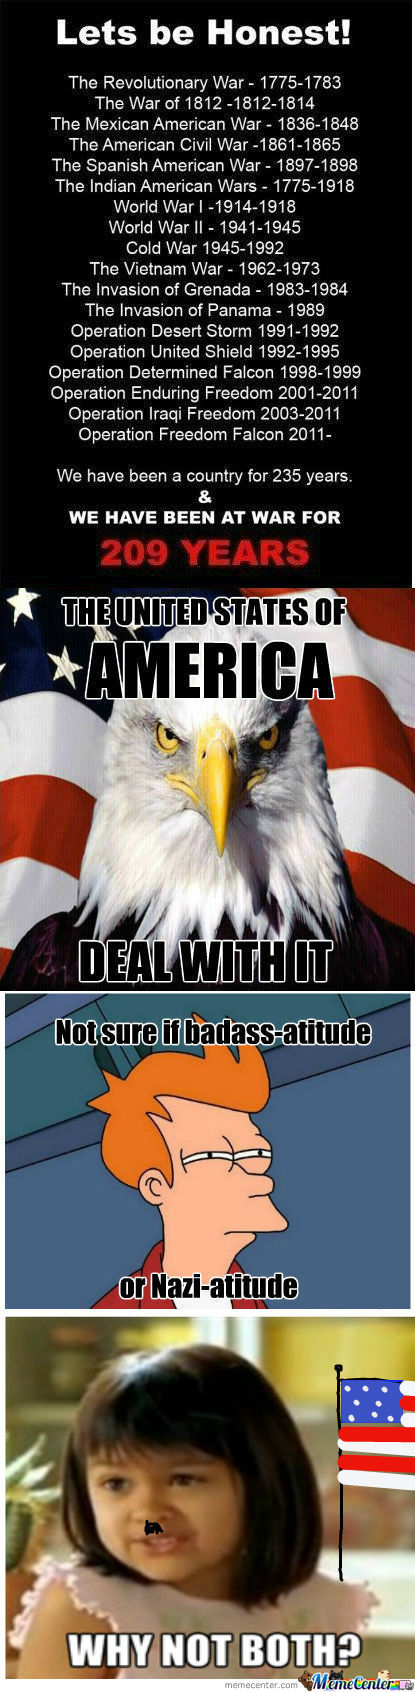 [RMX] [RMX] [RMX] Americans - We Have Been A Country For 235 Years & Whe Have Been At War For 209 Years